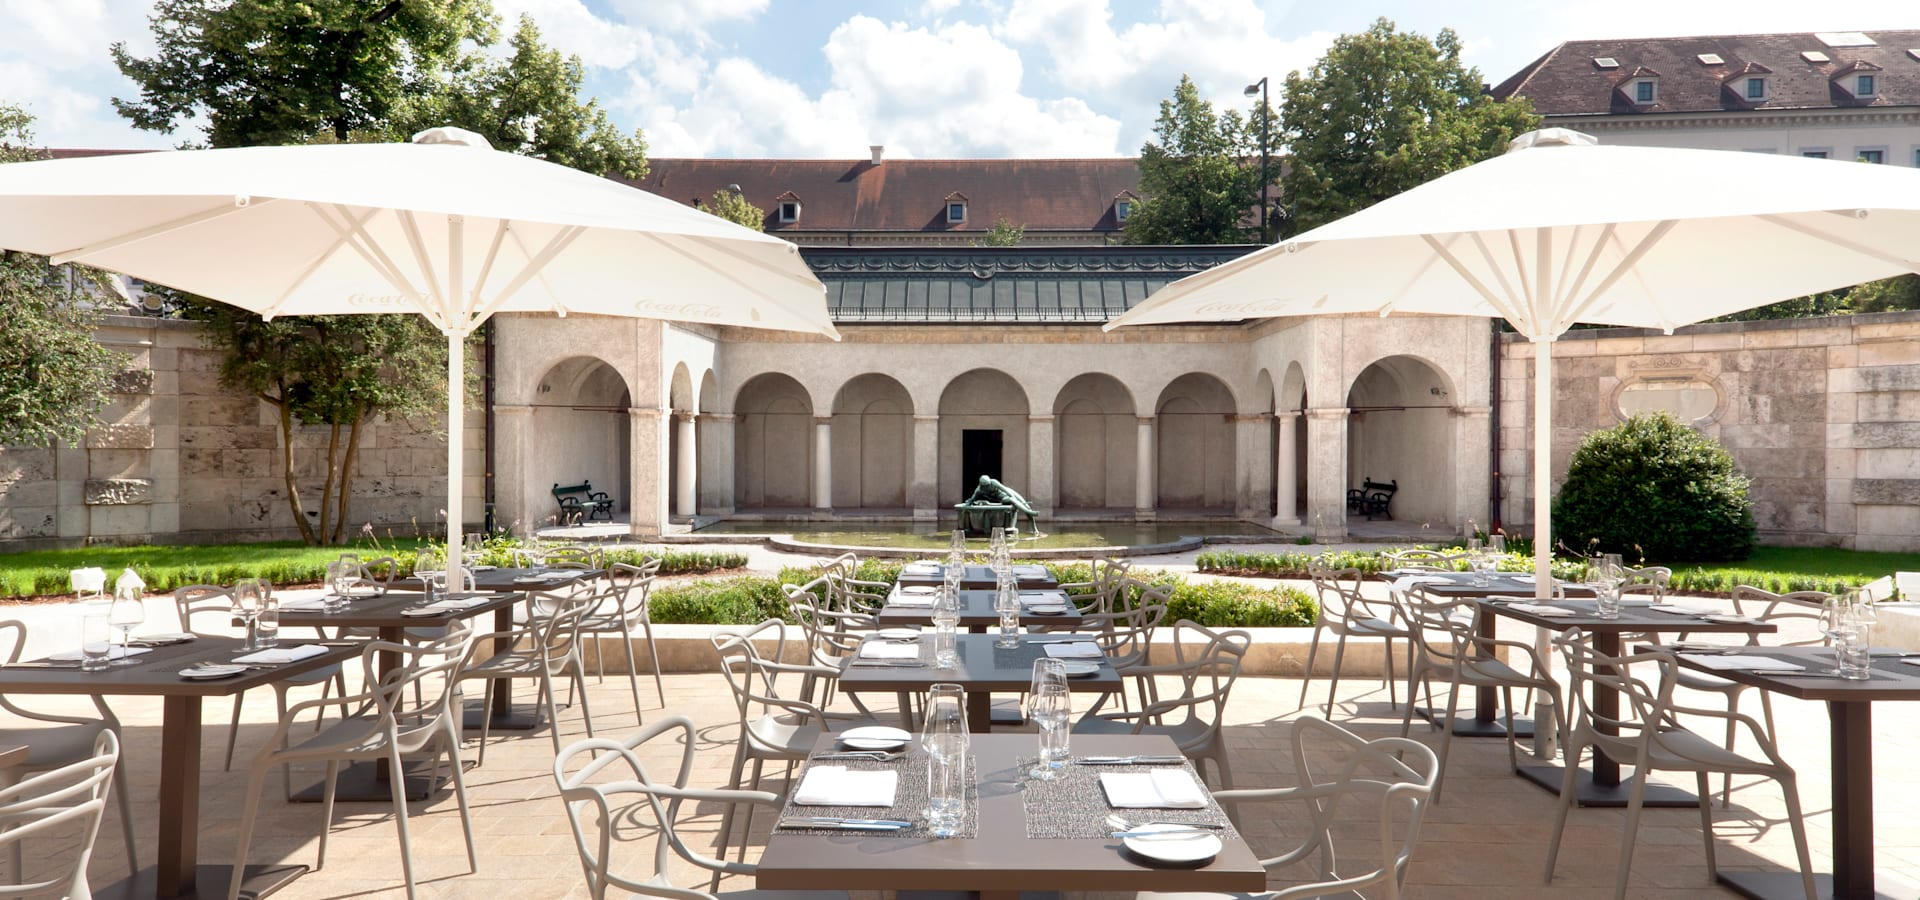 Restaurant Bayerisches Nationalmuseum Restaurant Bayerisches Nationalmuseum By Brückner Architekten Gmbh